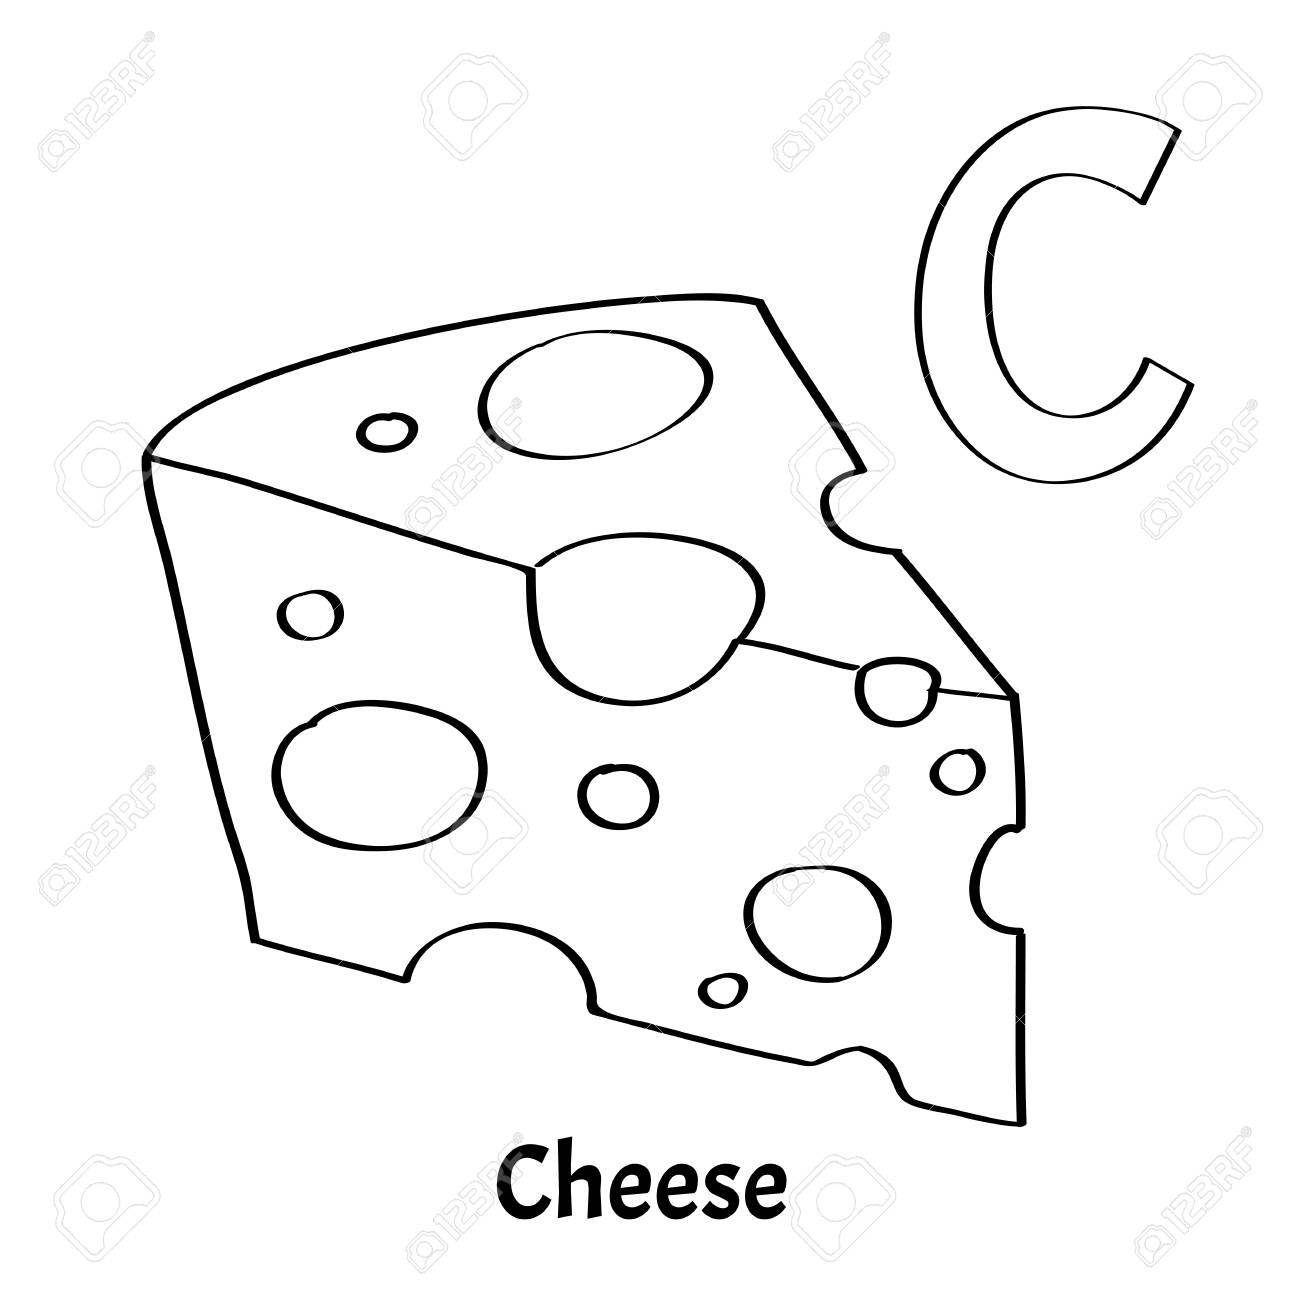 Vector alphabet letter C, coloring page. Cheese